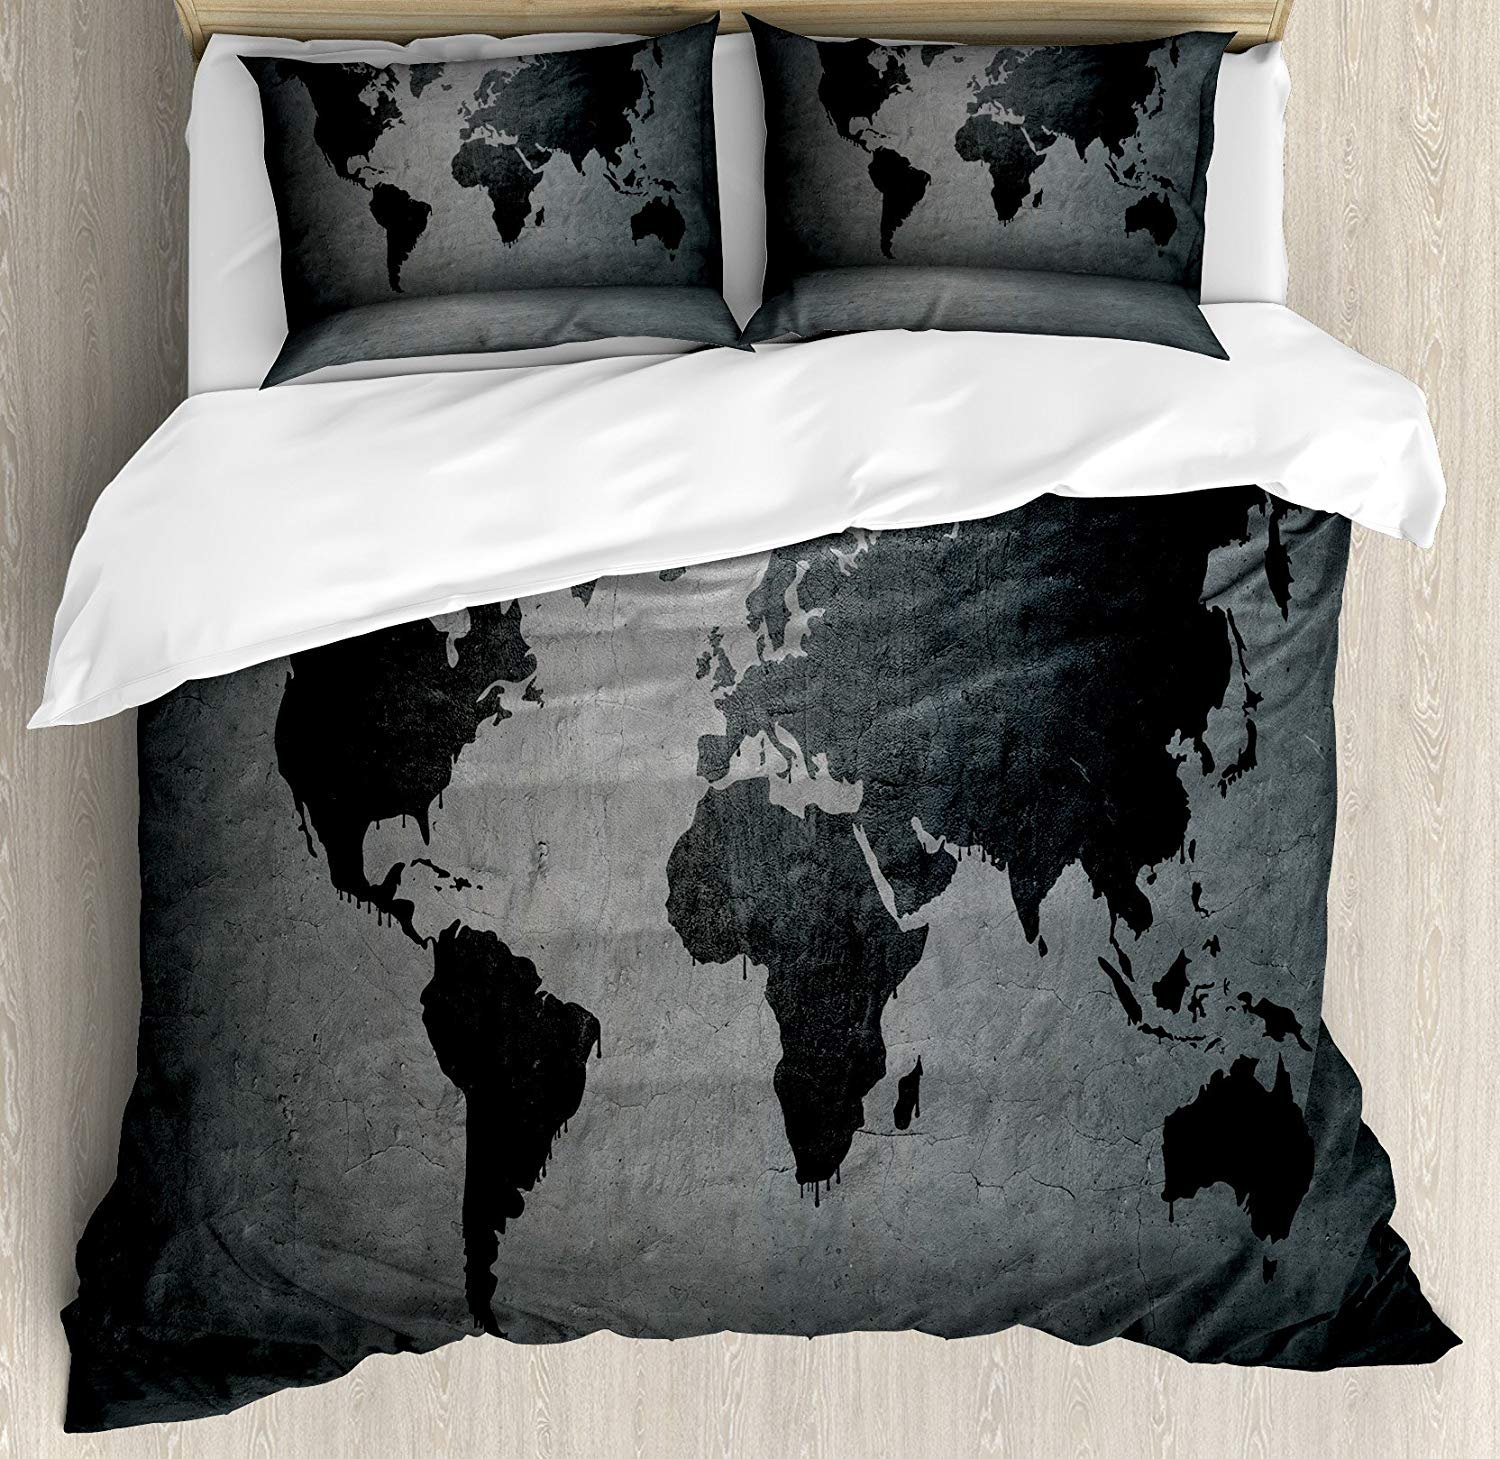 Dark Grey Duvet Cover Set Black Colored World Map on Concrete Wall Image Urban Structure Grungy Rough Look Microfiber Bedding Sets with Zipper and Corner Ties Grey Black (4 Pcs, Twin)